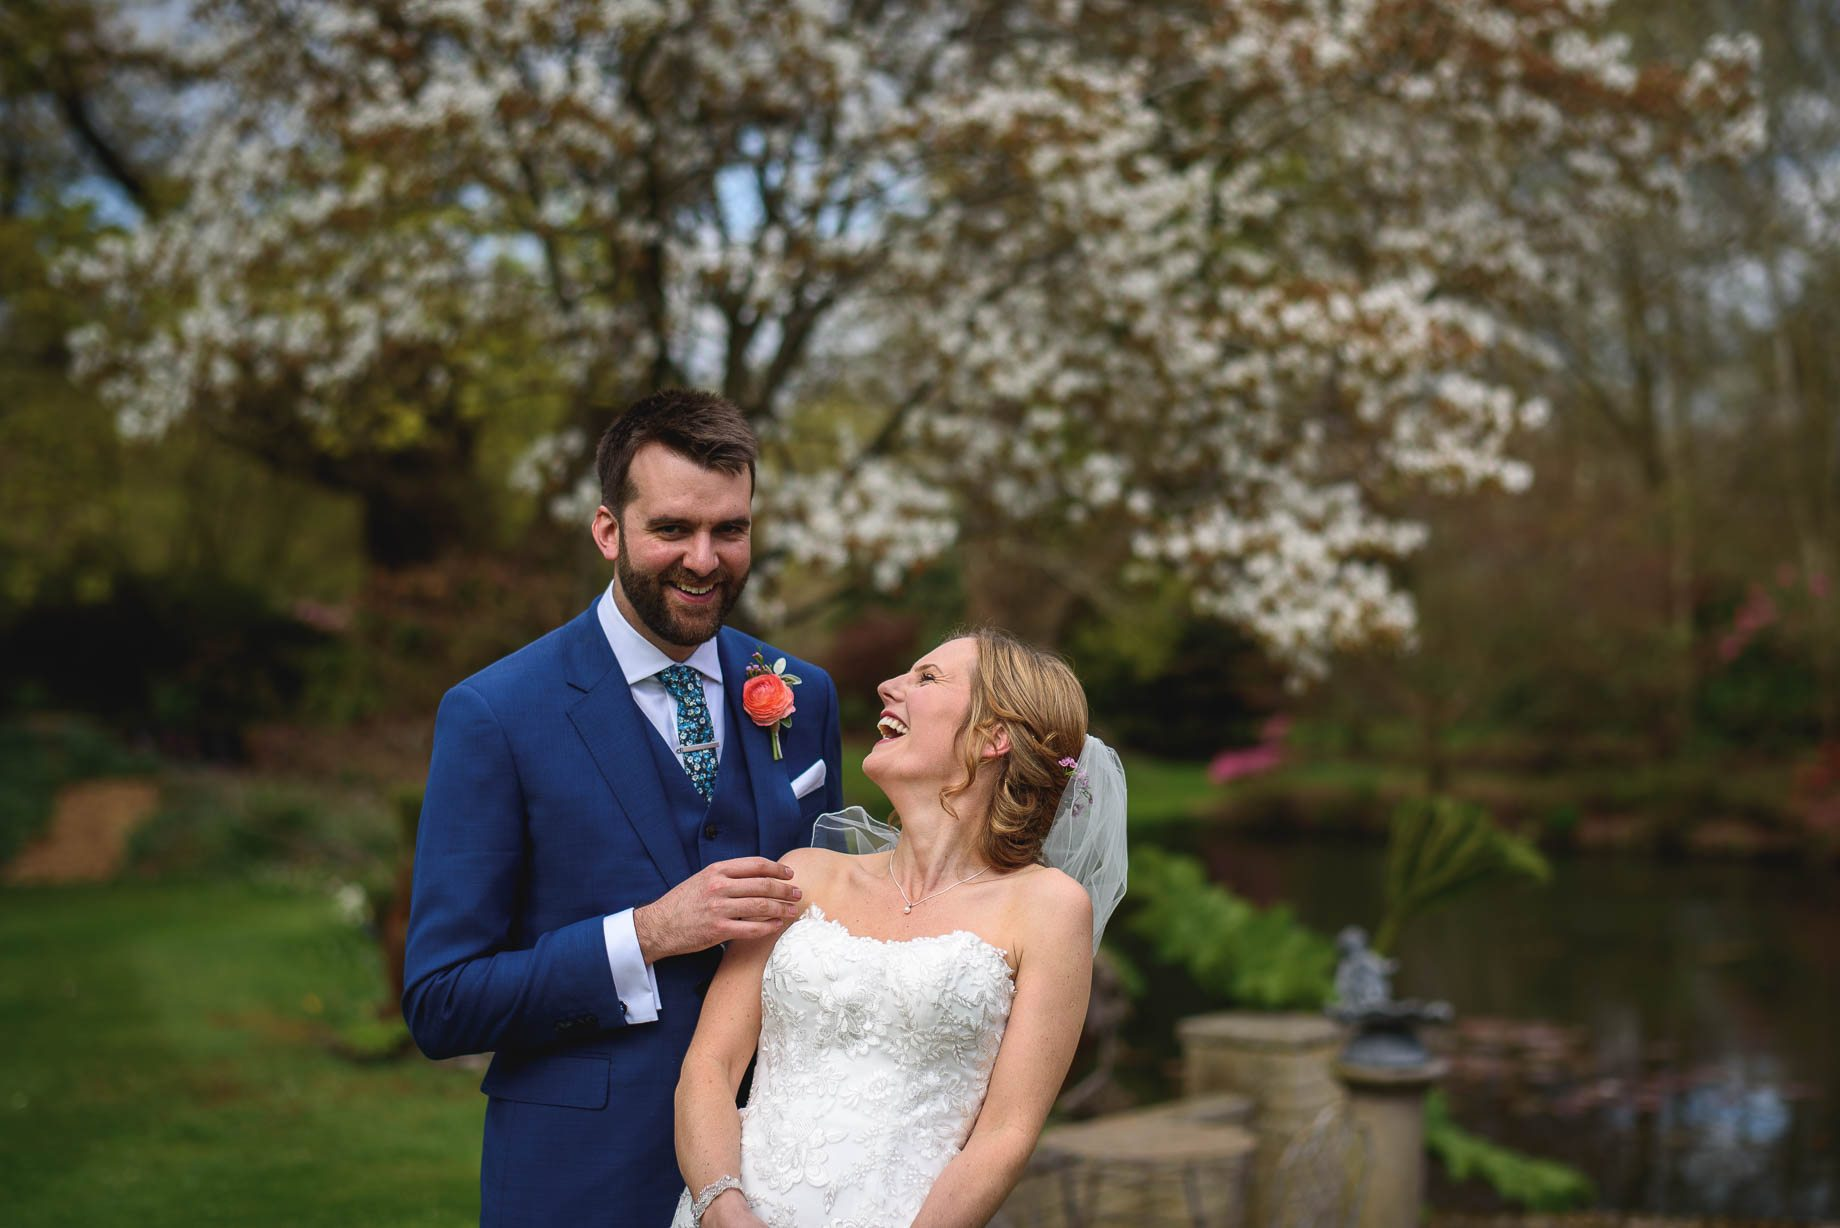 Rivervale Barn wedding photography by Guy Collier - Claire and Simon (87 of 133)